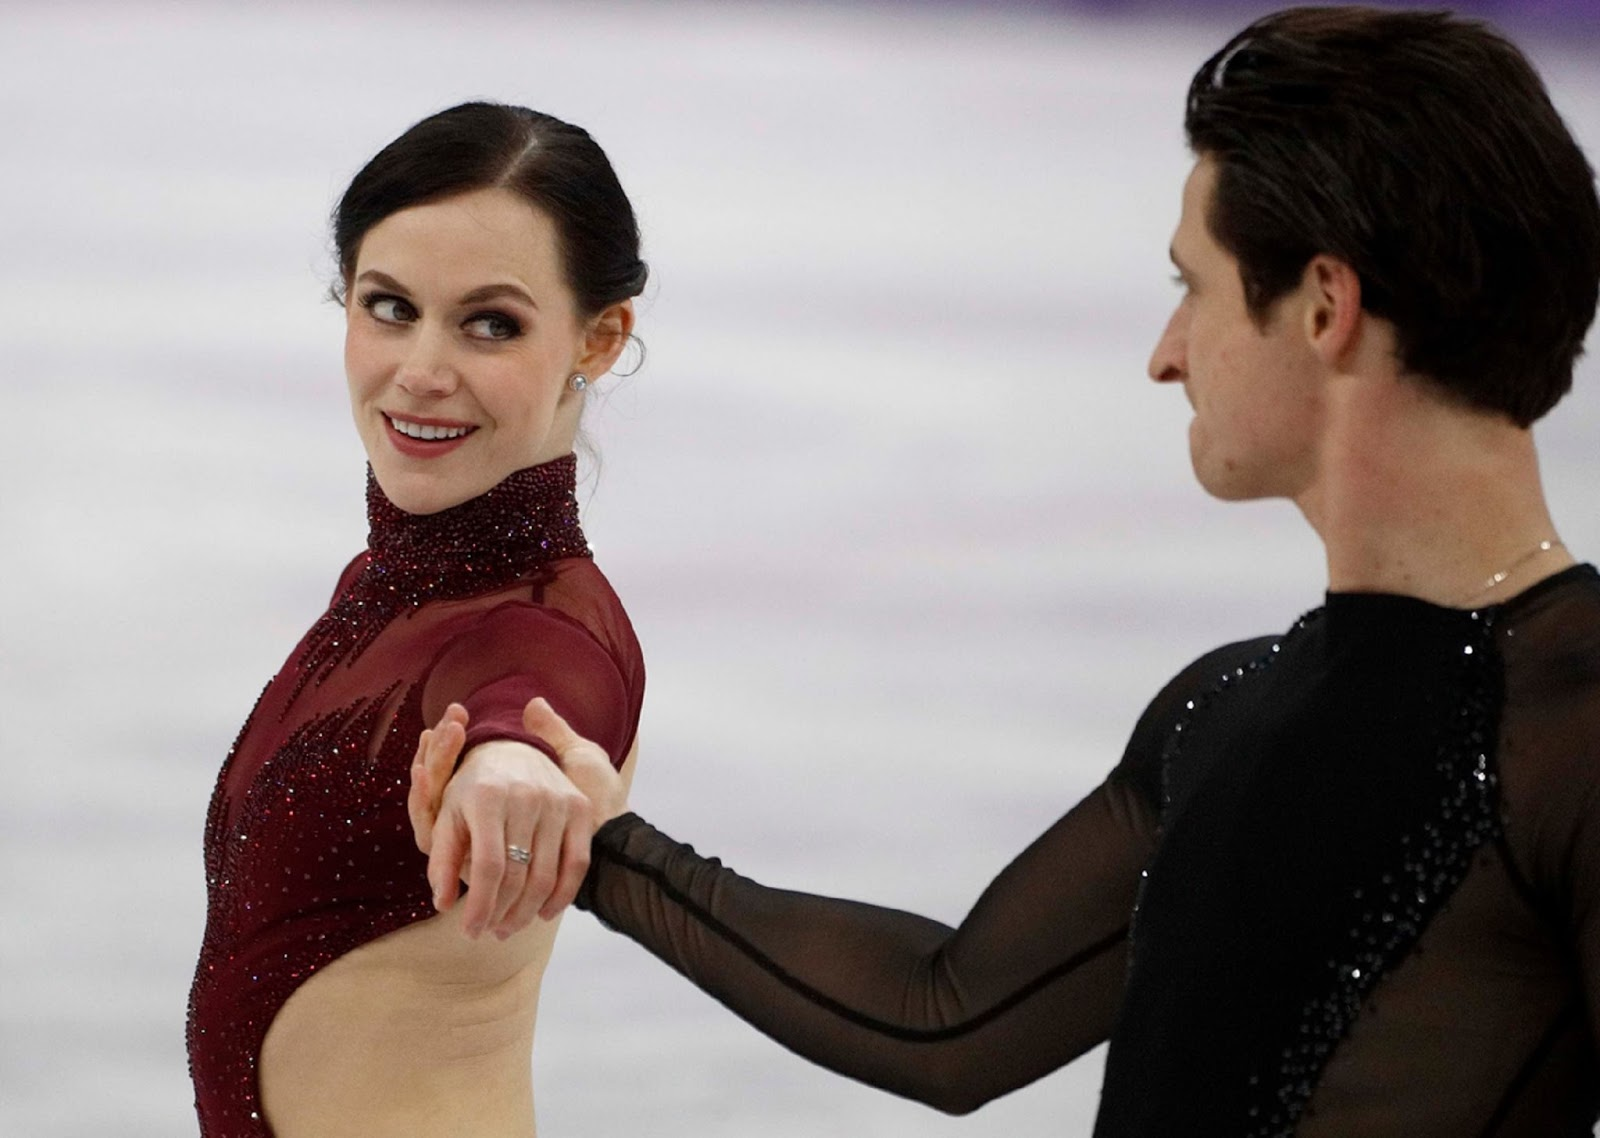 TESSA VIRTUE, SCOTT MOIR 7